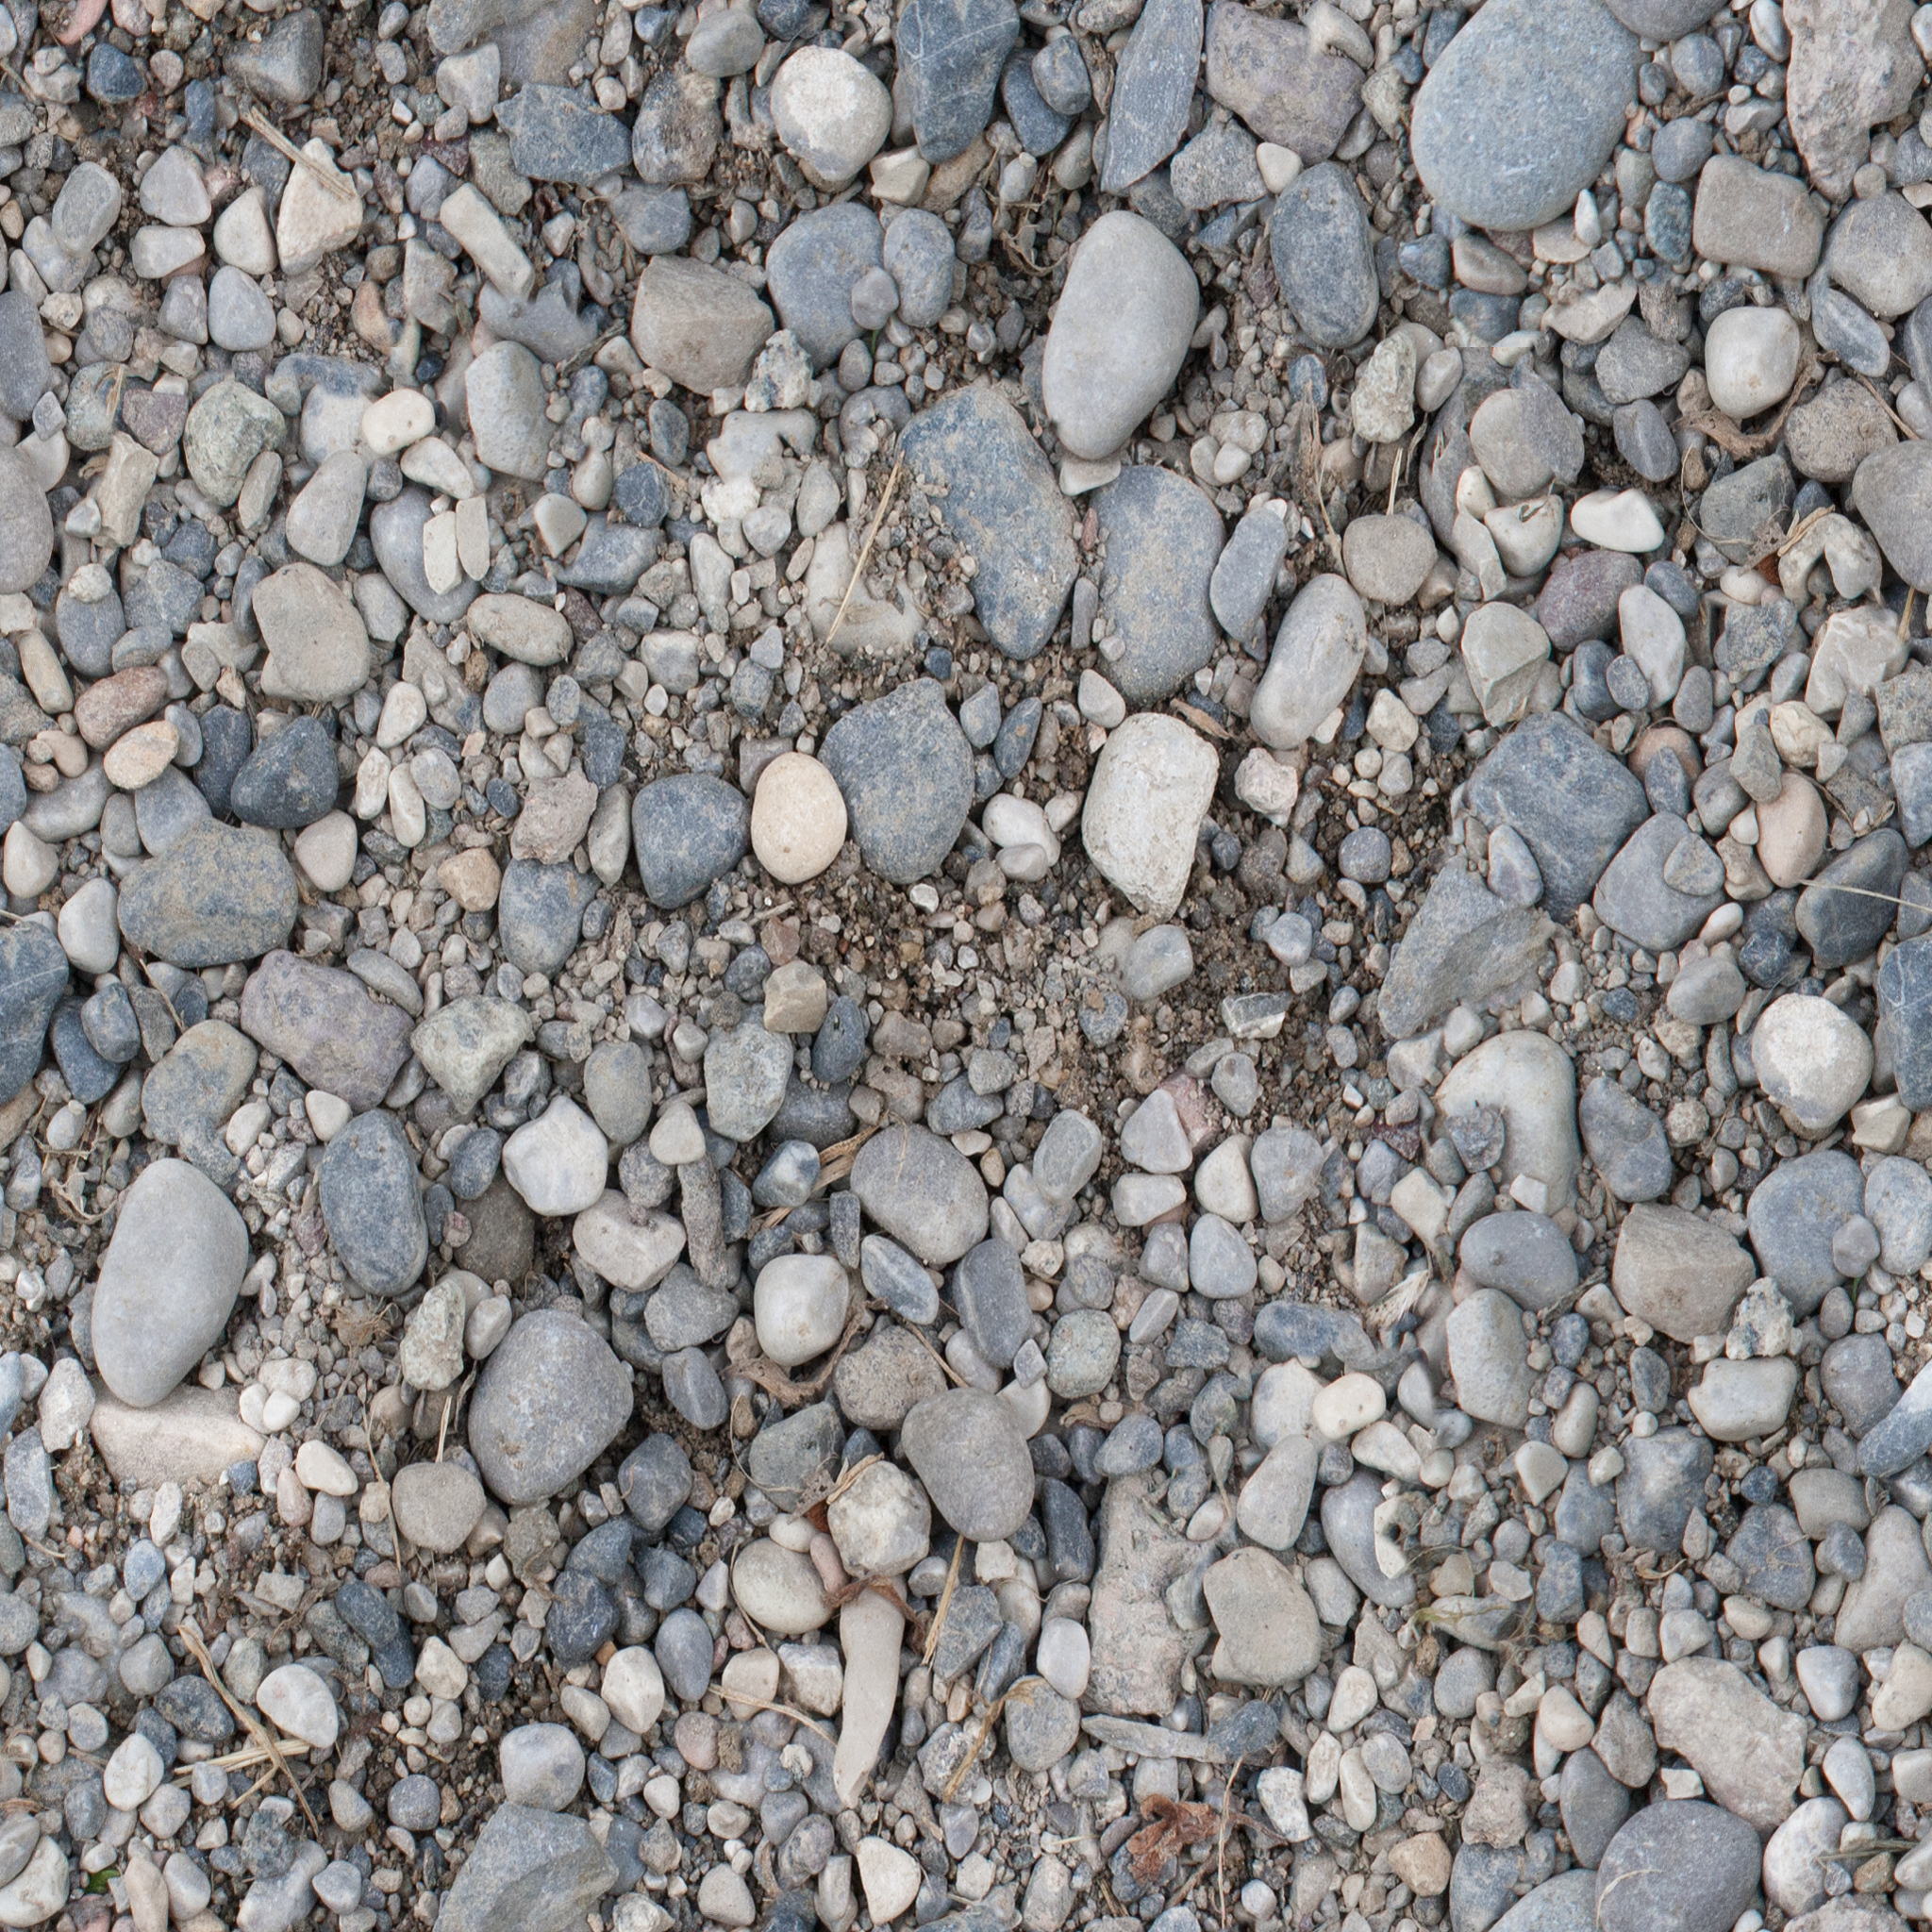 gray-pebbles.jpg